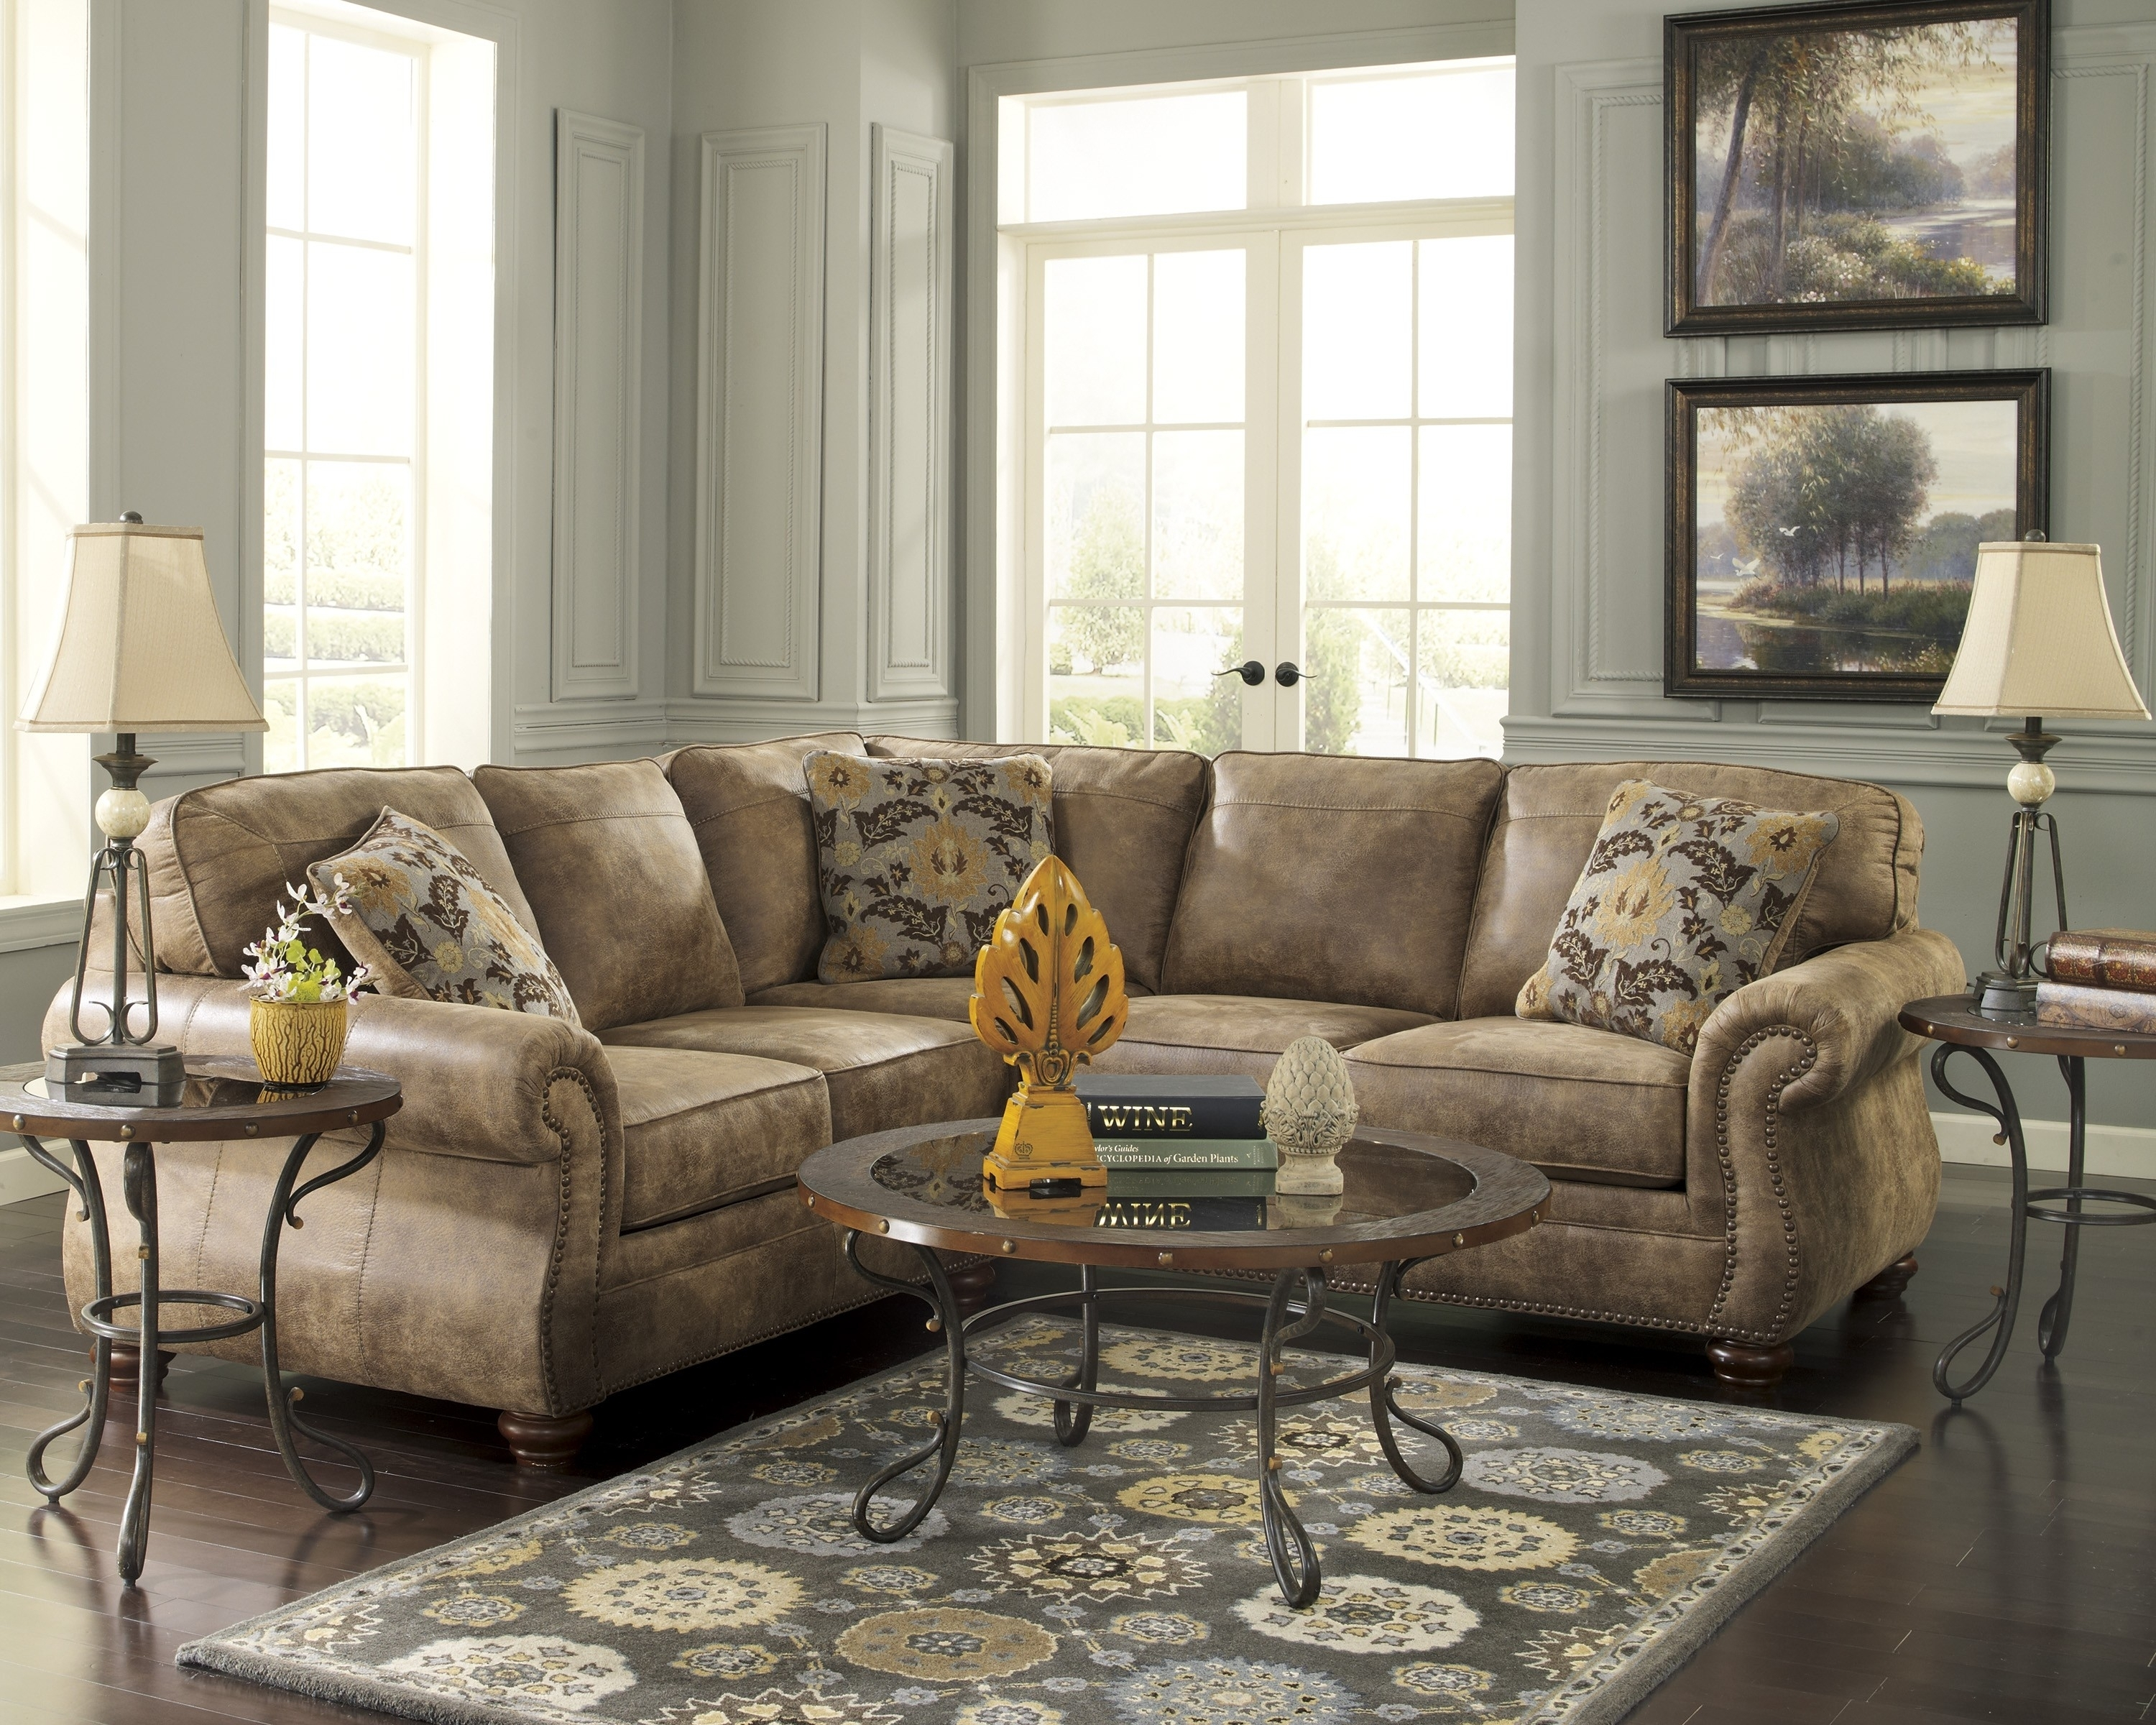 Photos Sectional Sofas Tucson – Buildsimplehome With Tucson Sectional Sofas (View 4 of 10)